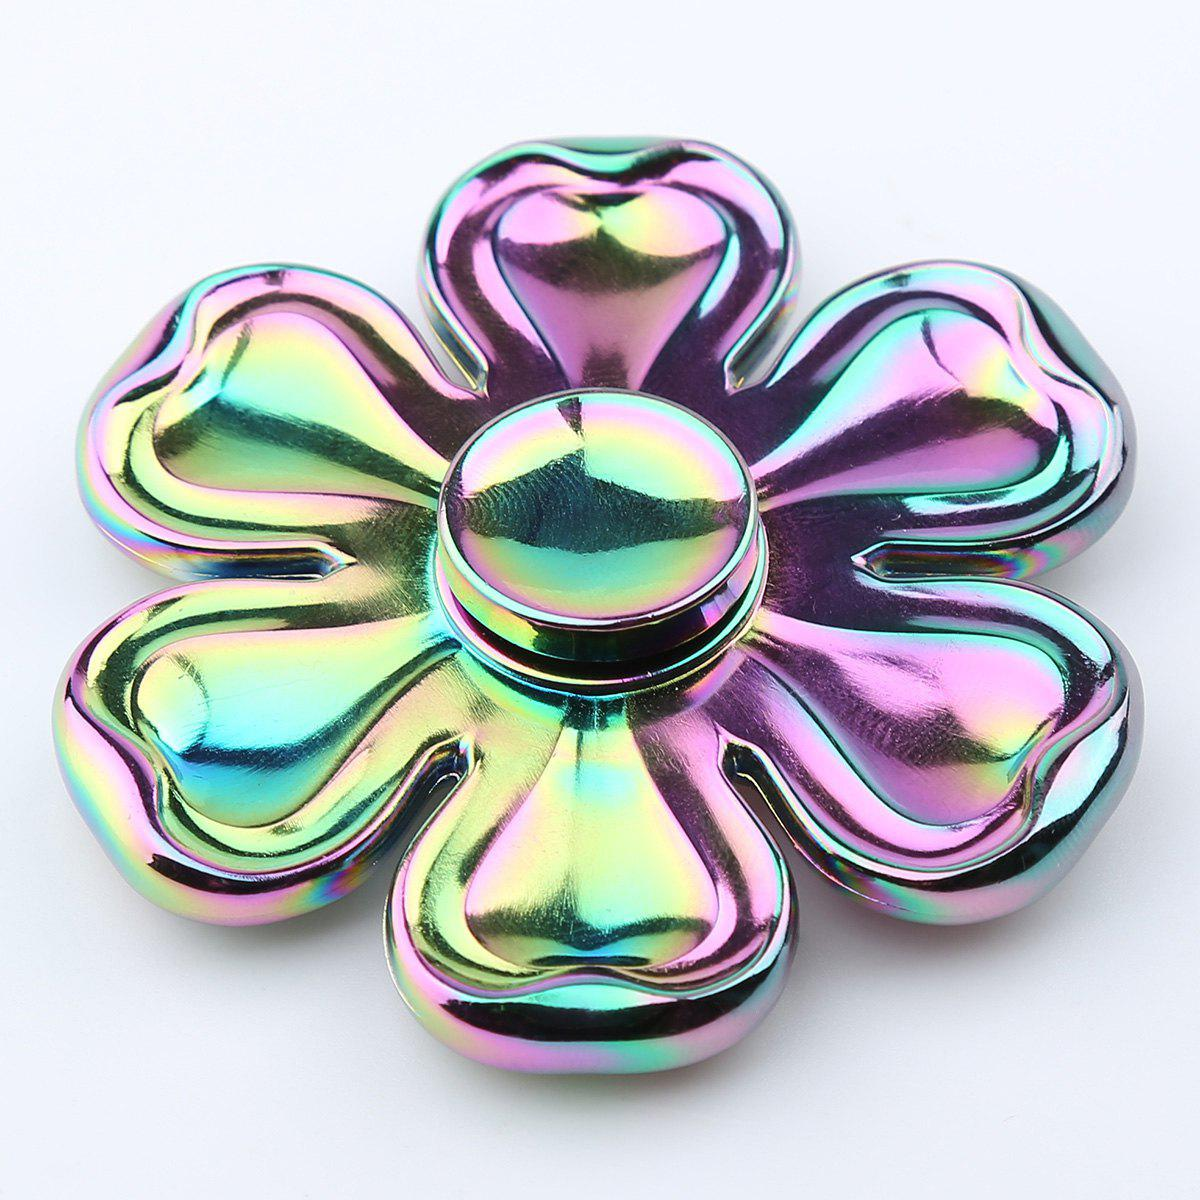 Petaloid Zinc Alloy Fidget Toy Hand Spinner - COLORFUL 6.5*6.5*1.5CM